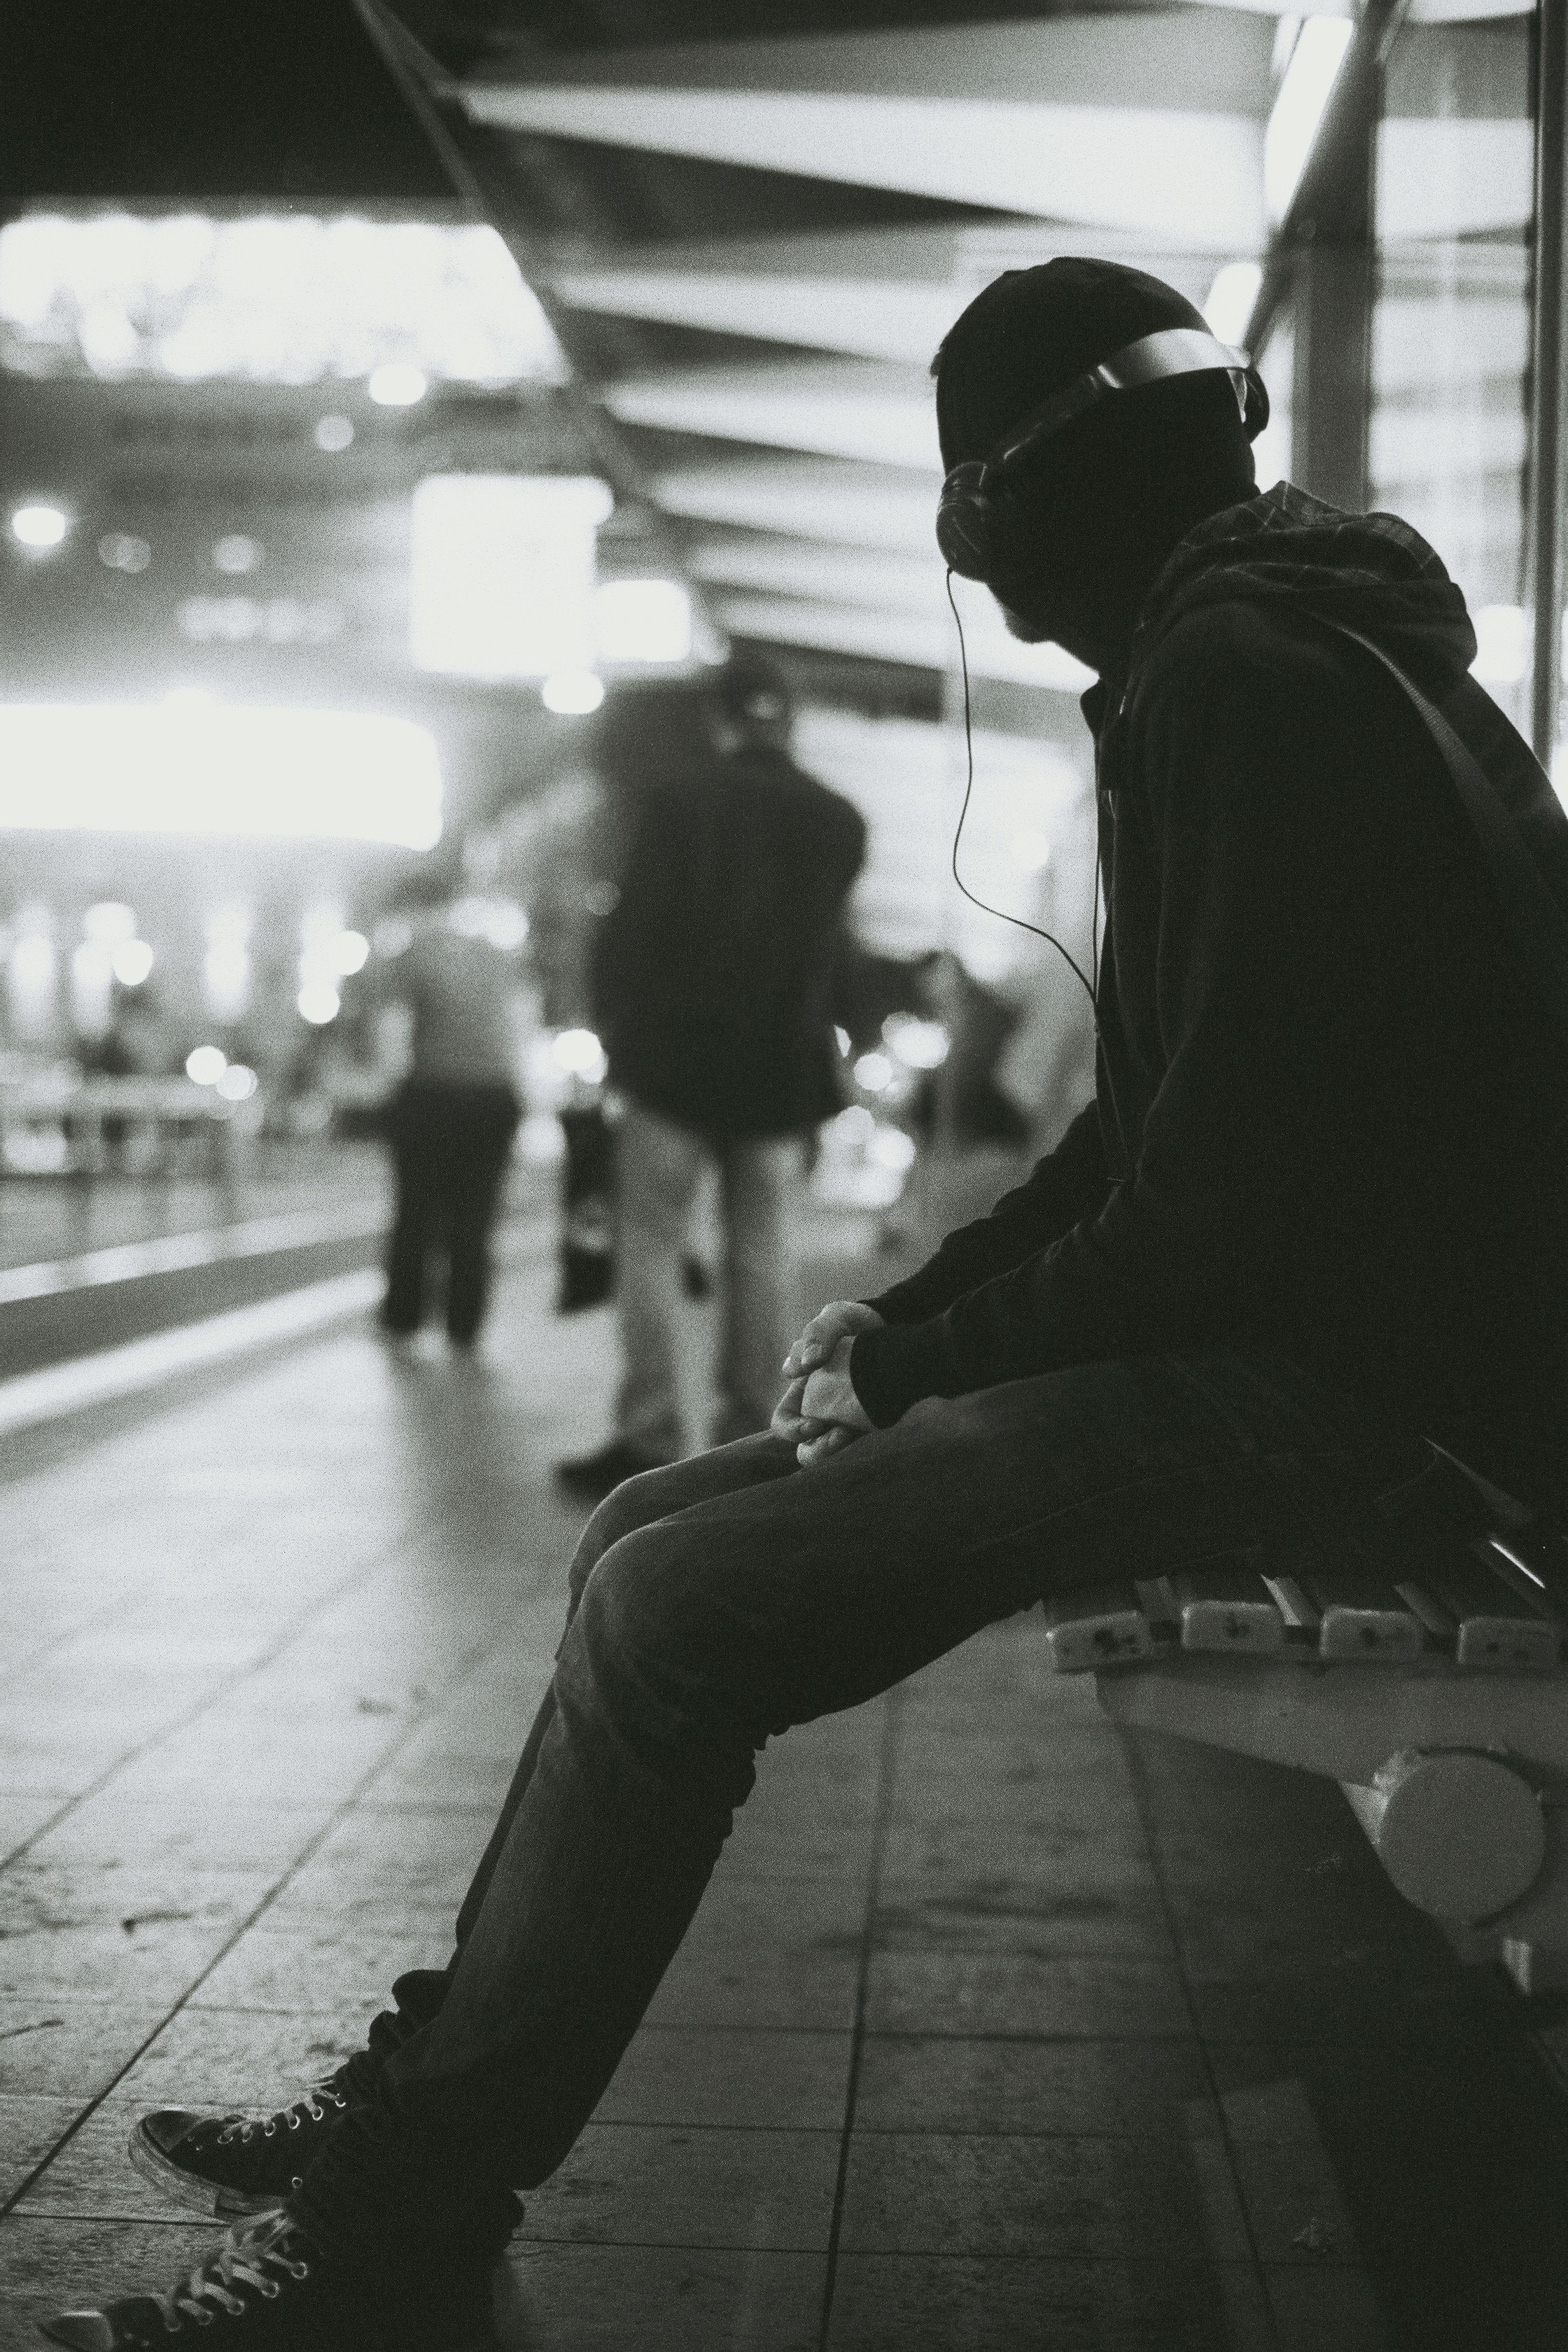 grayscale photography of a man sitting on bench while listening music